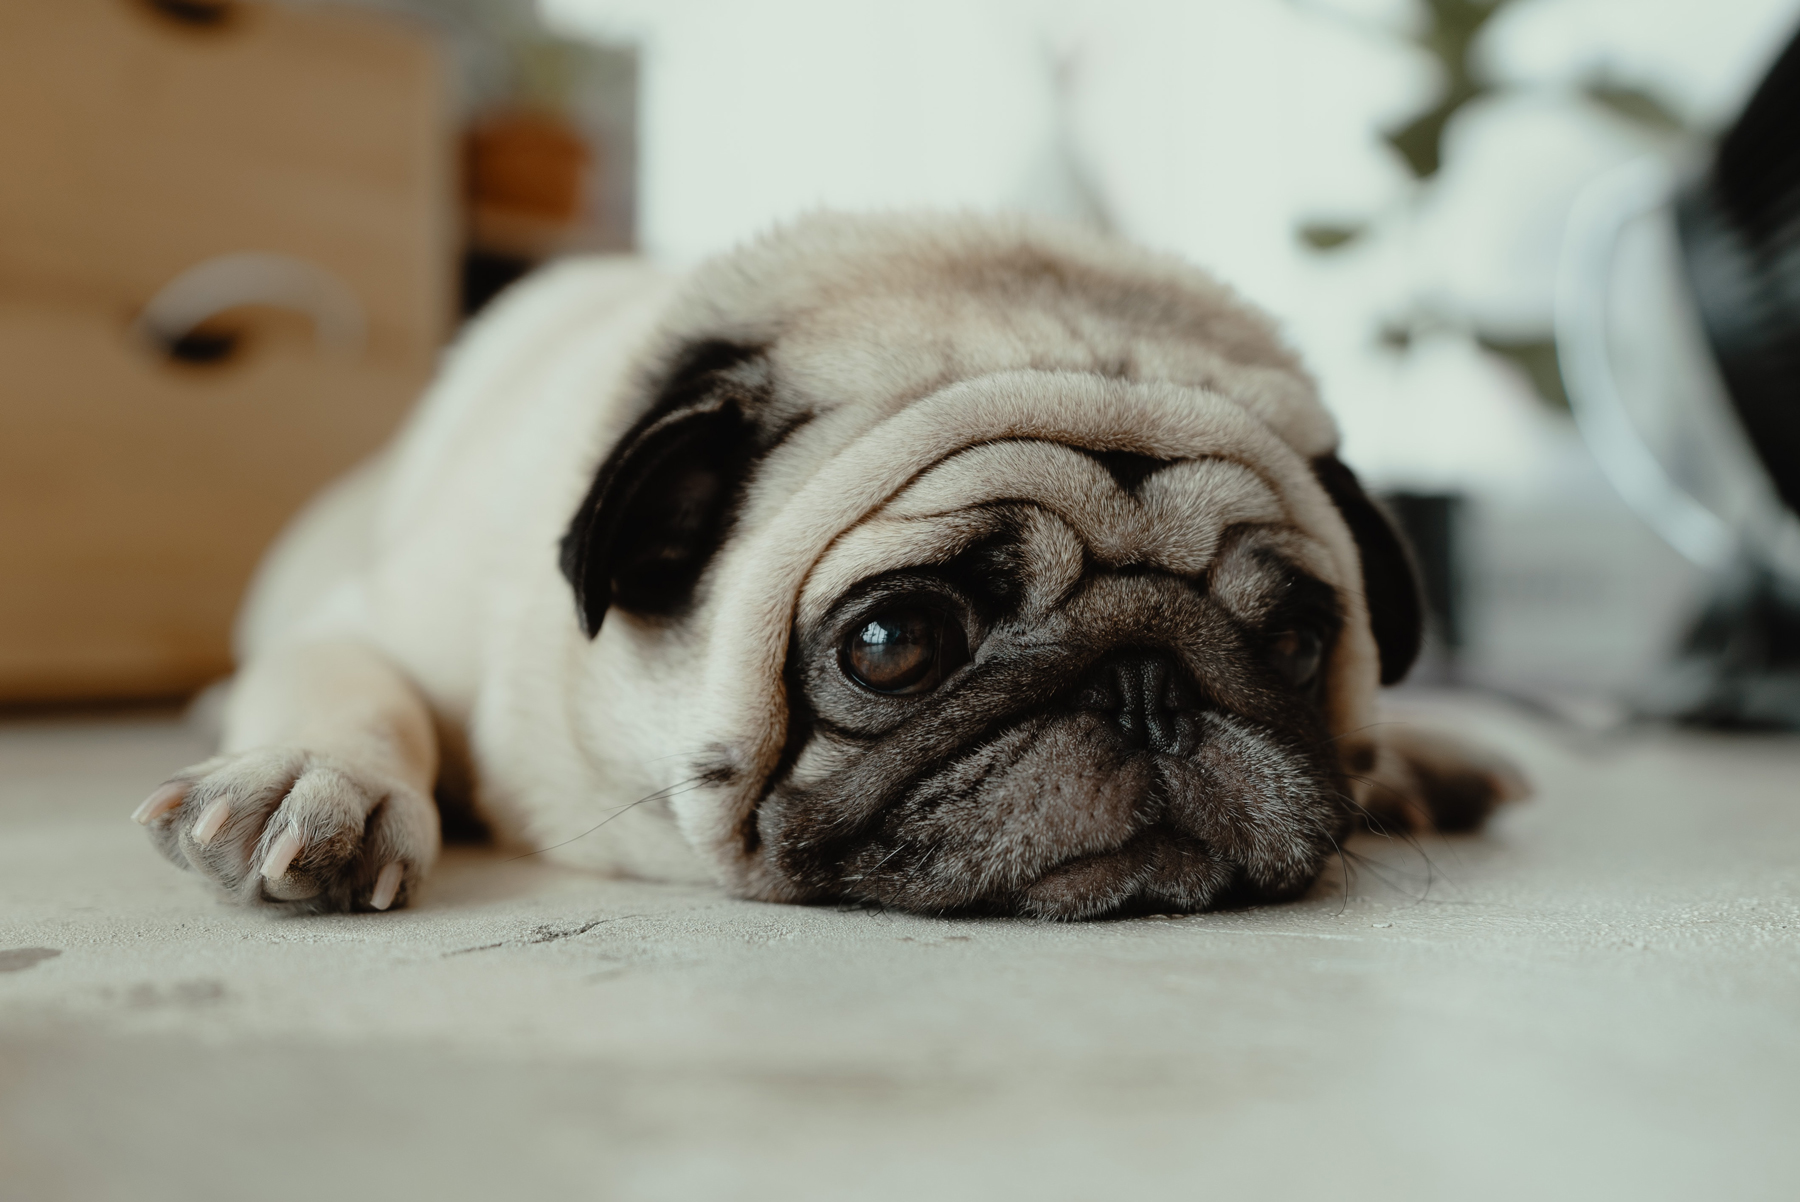 a sad looking pug laying on the floor